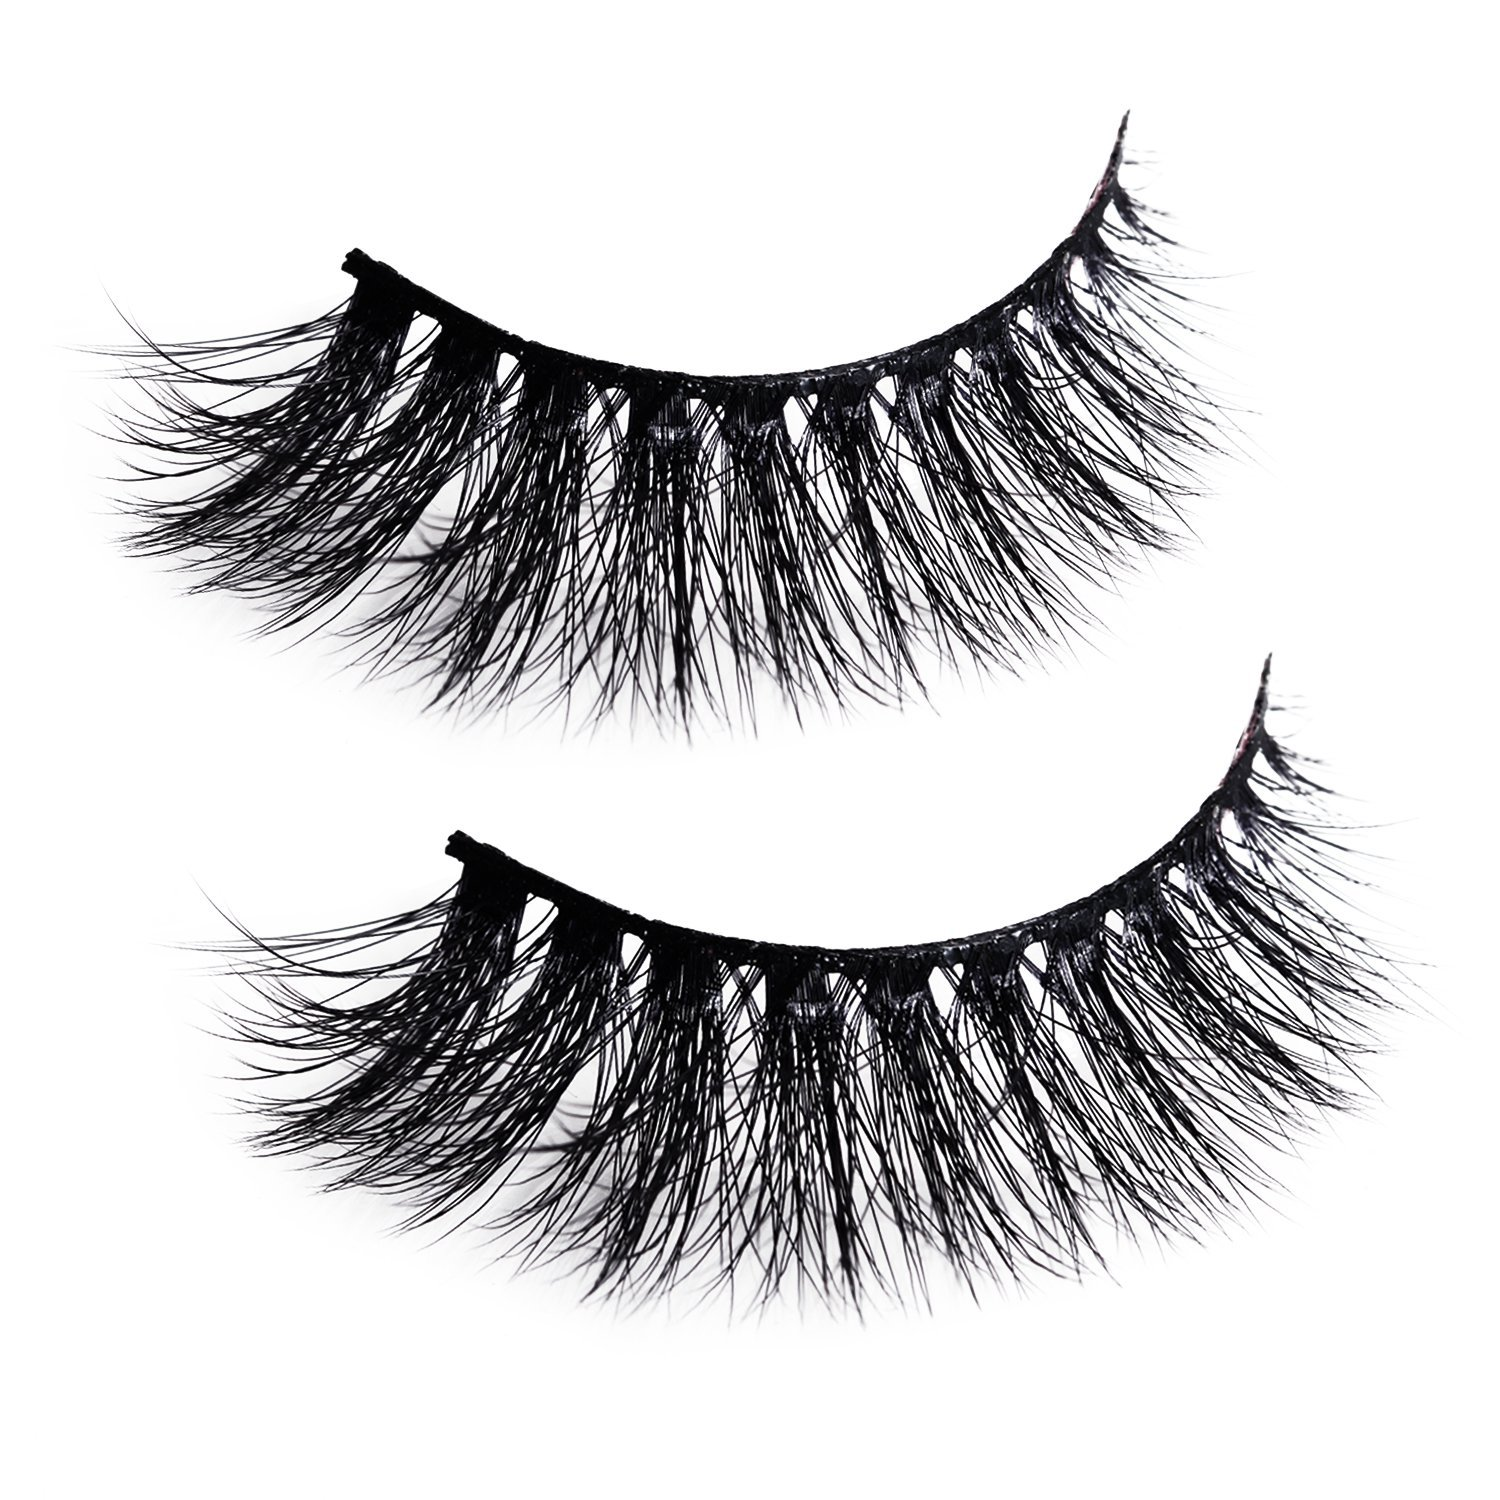 Cheap D Wispy Eyelashes Find D Wispy Eyelashes Deals On Line At